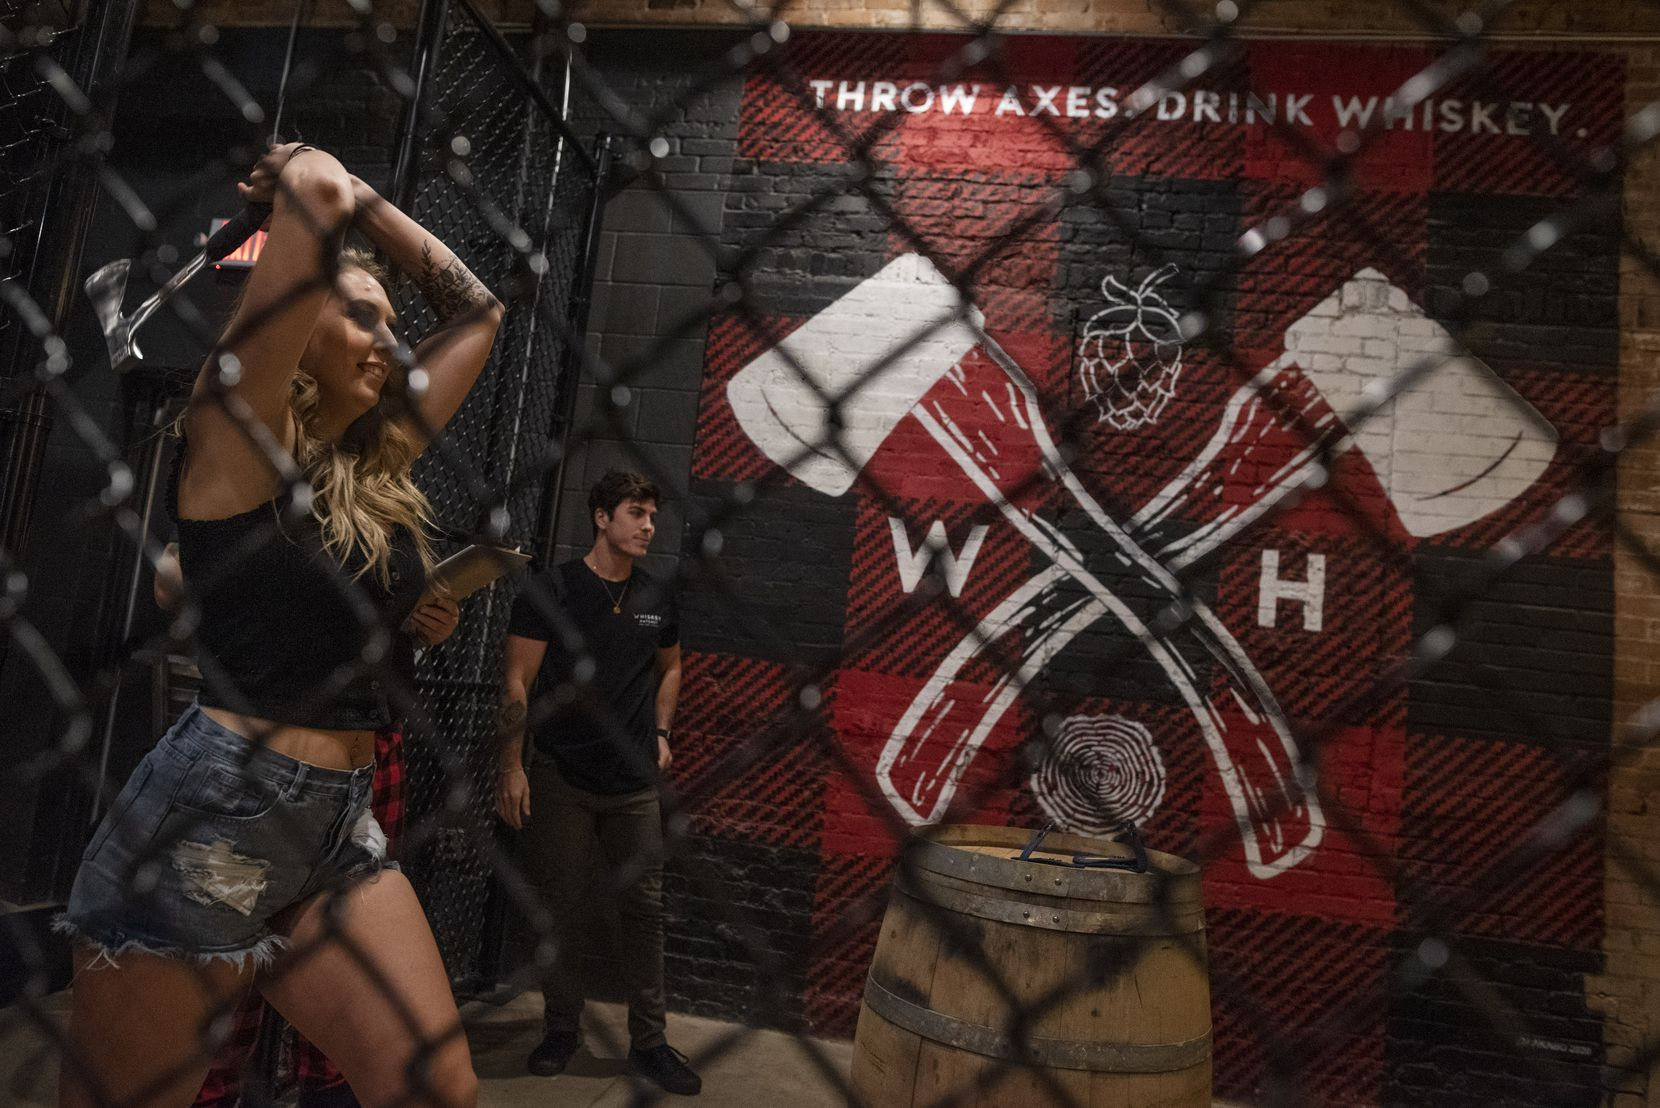 Customers at Whiskey Hatchet throw axes in designated bays. Here, staffer Paige Blaylock shows how to throw.